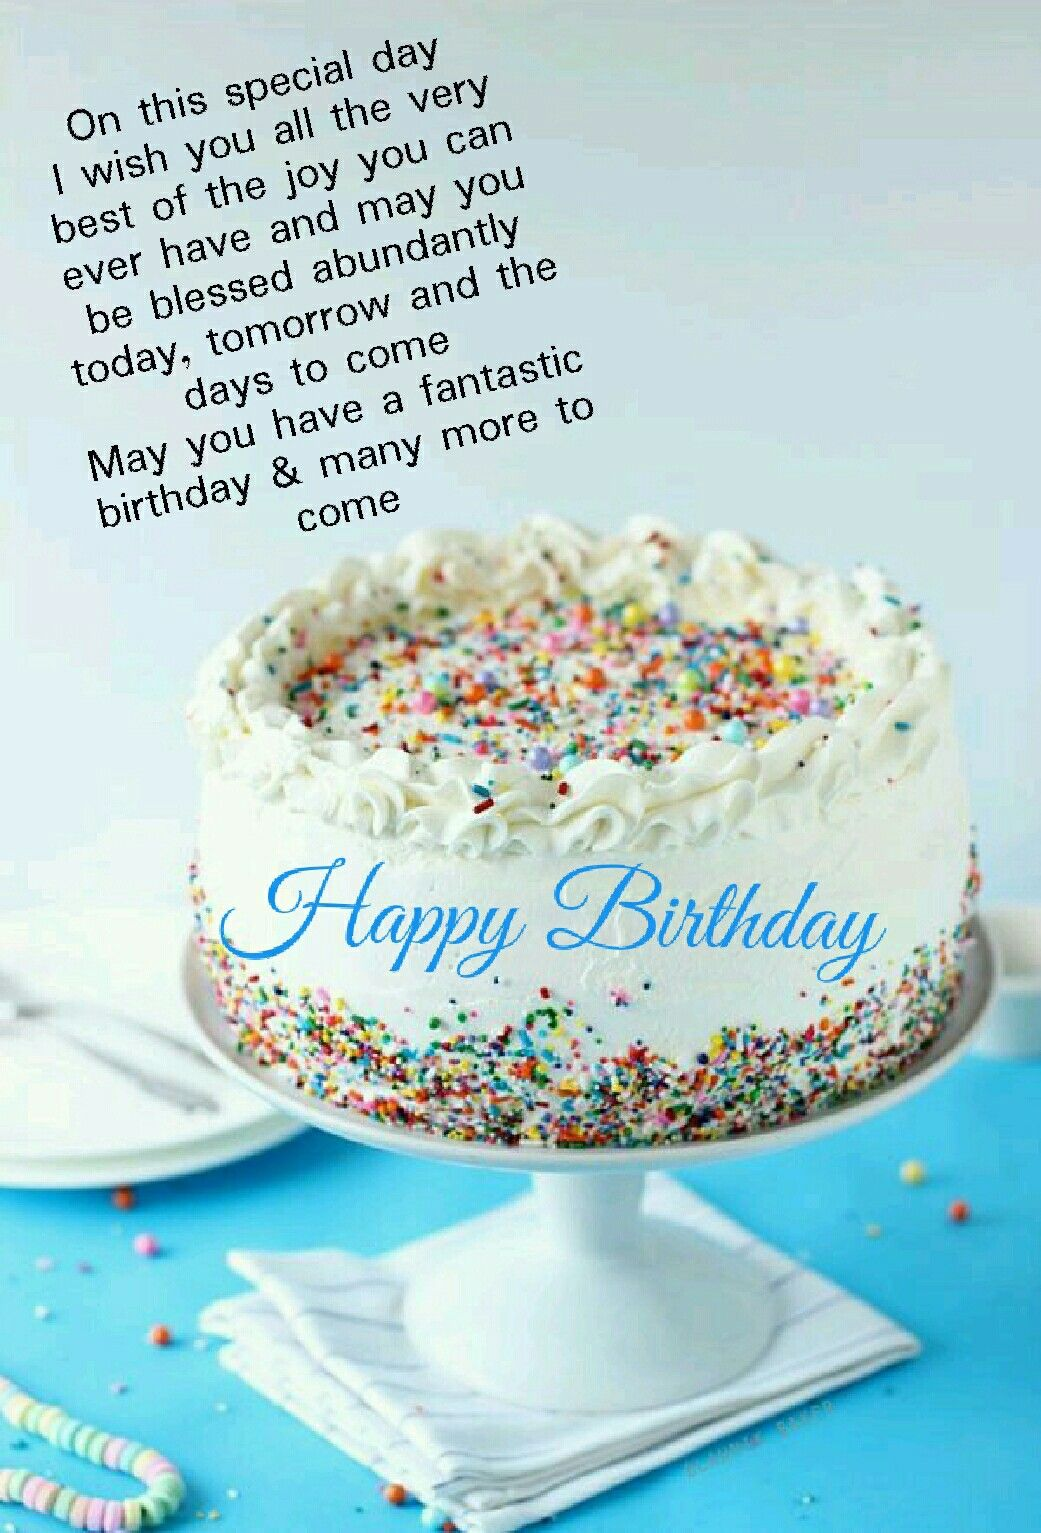 A Very Happy Happy Birthday To My One And Only Love Dr Alexander Williams Happy Birthday Wishes Messages Happy Birthday Wishes Cards Happy Birthday Niece